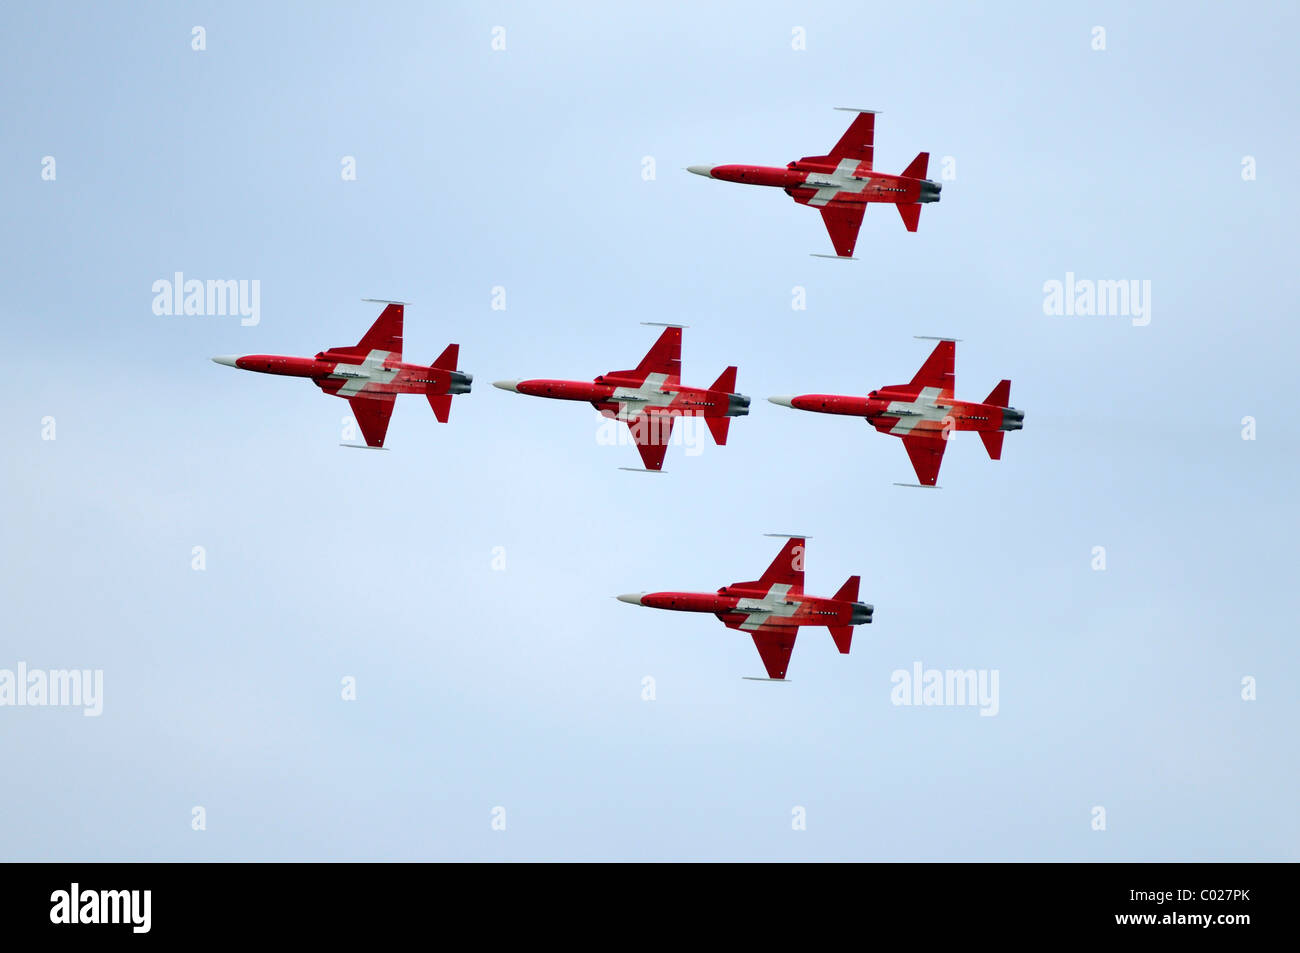 Patrouille Suisse flyingin formation, official jet aerobatic team of the Swiss Air Force, Emmen, Switzerland, Europe - Stock Image